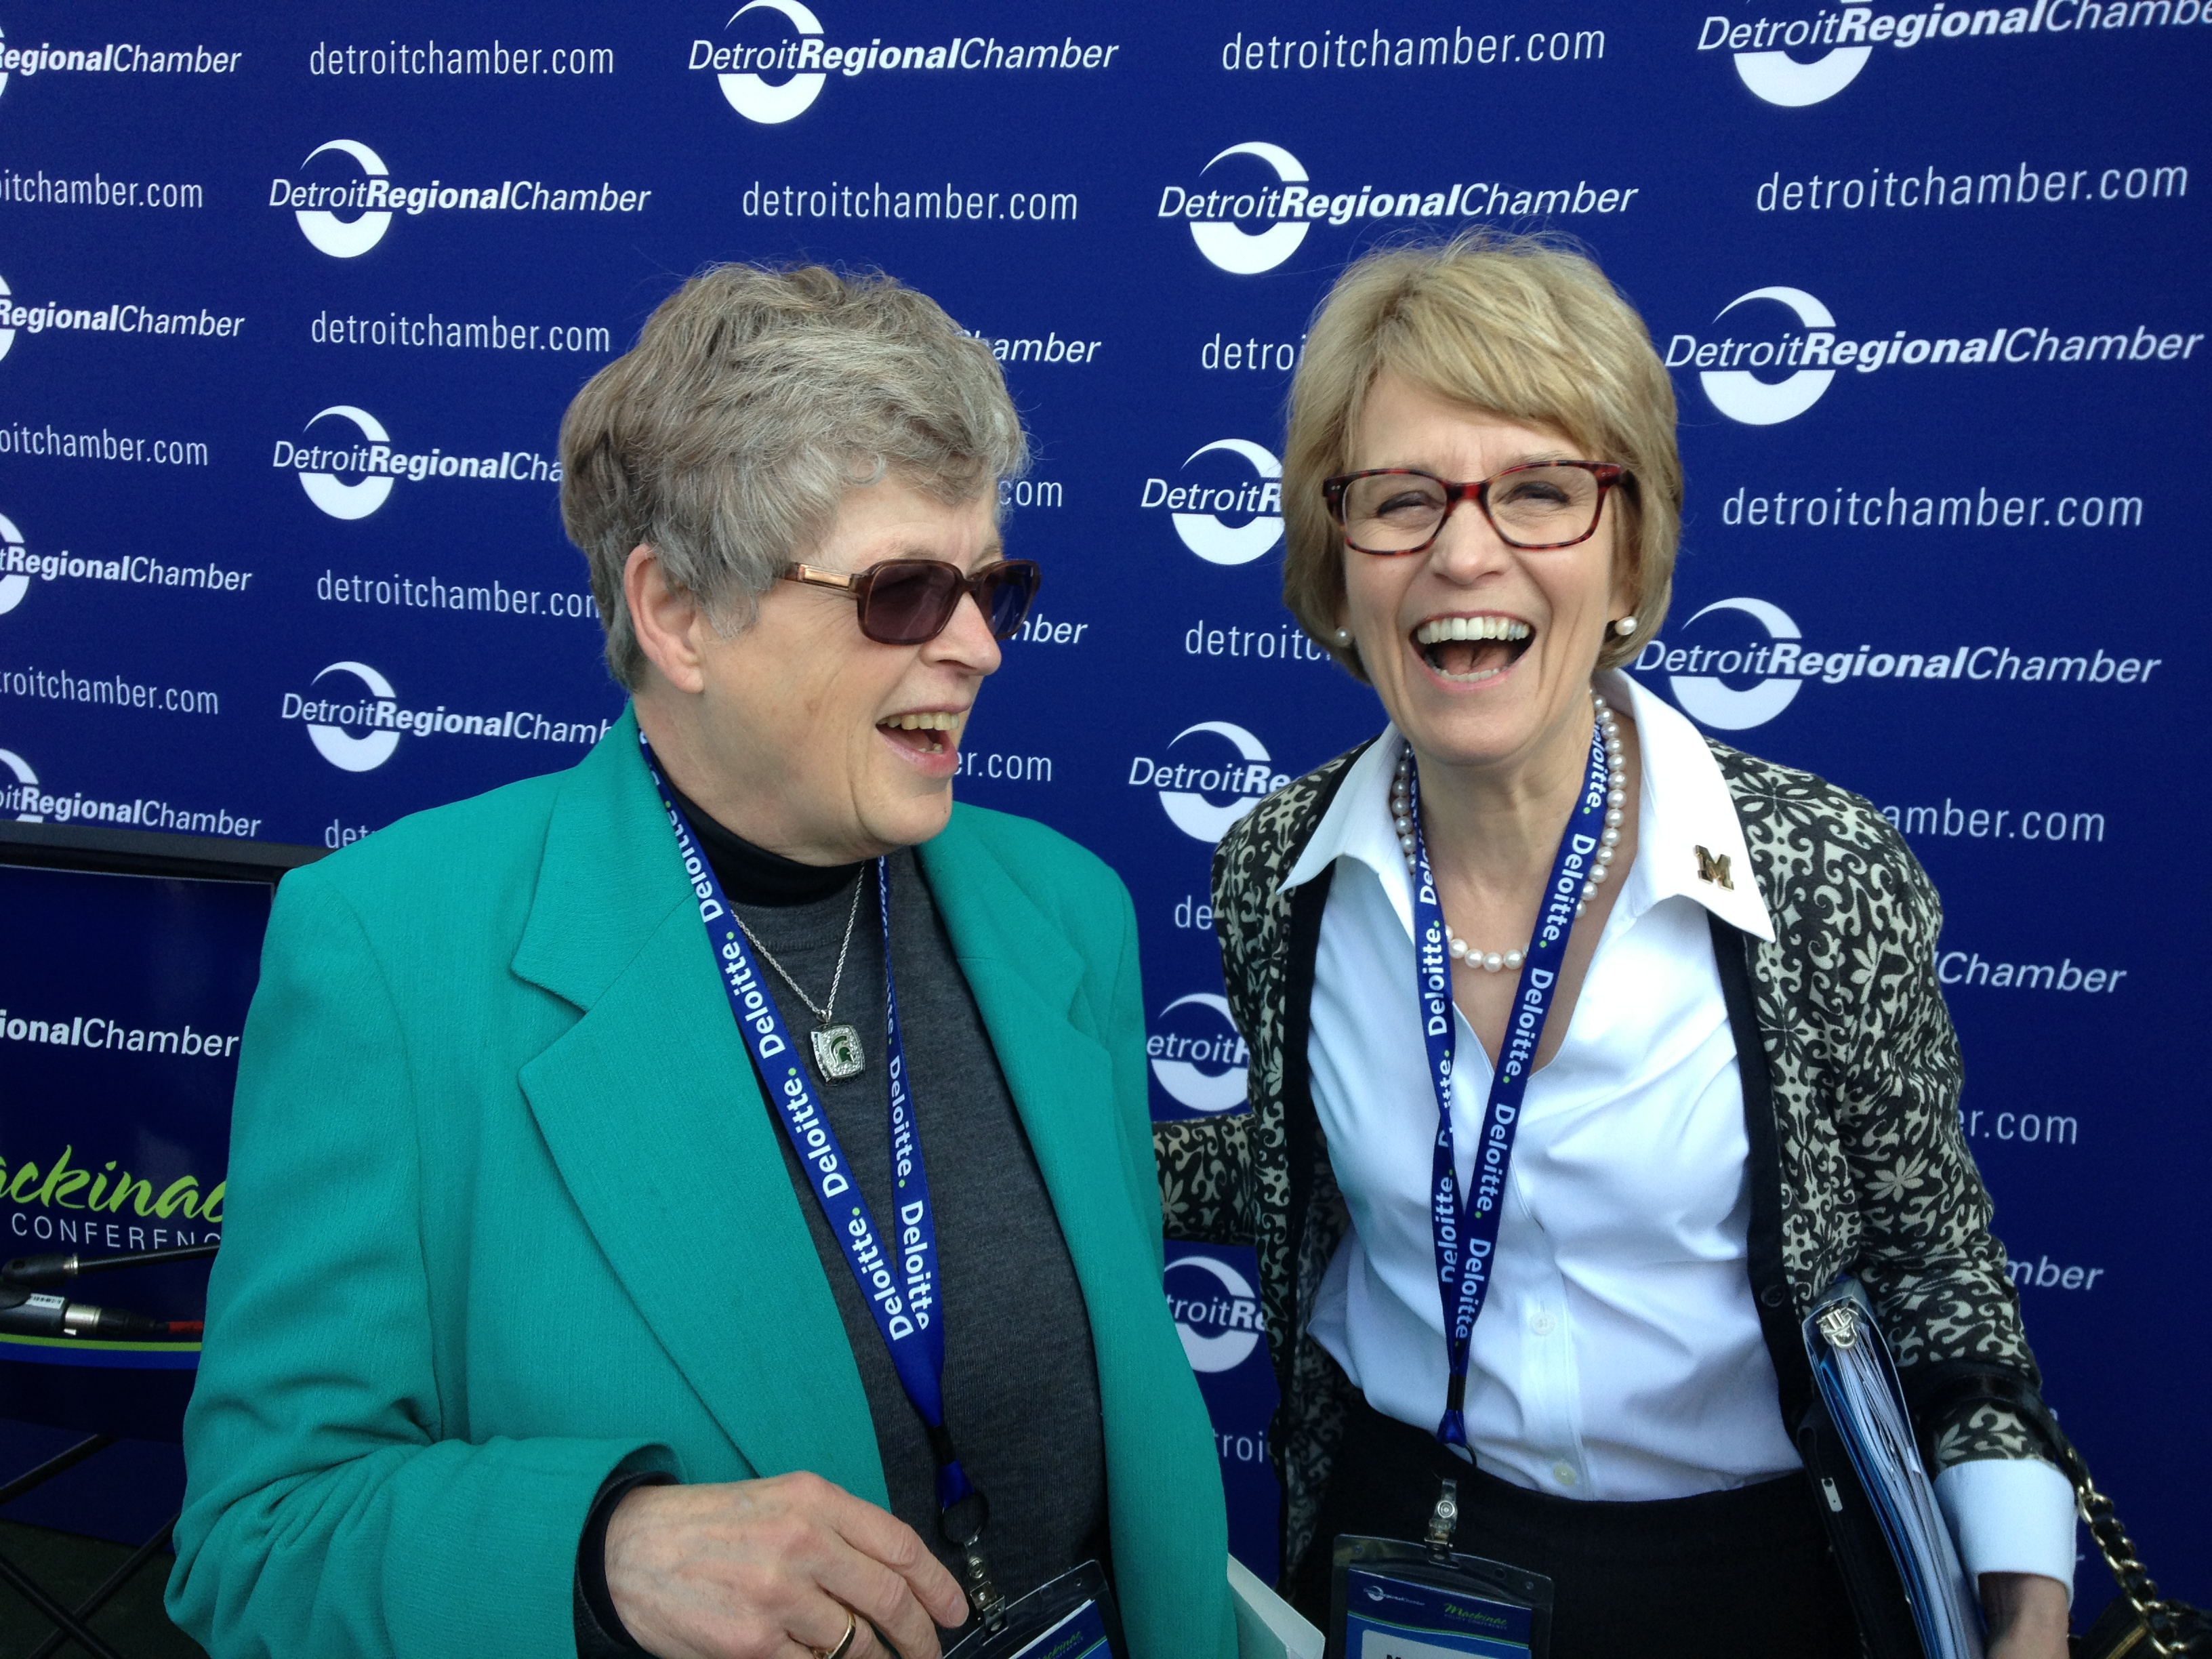 MSU president Lou Anna Simon with Mary Sue Coleman at the 2013 Mackinac Policy Conference. Image credit: John Russell, URC